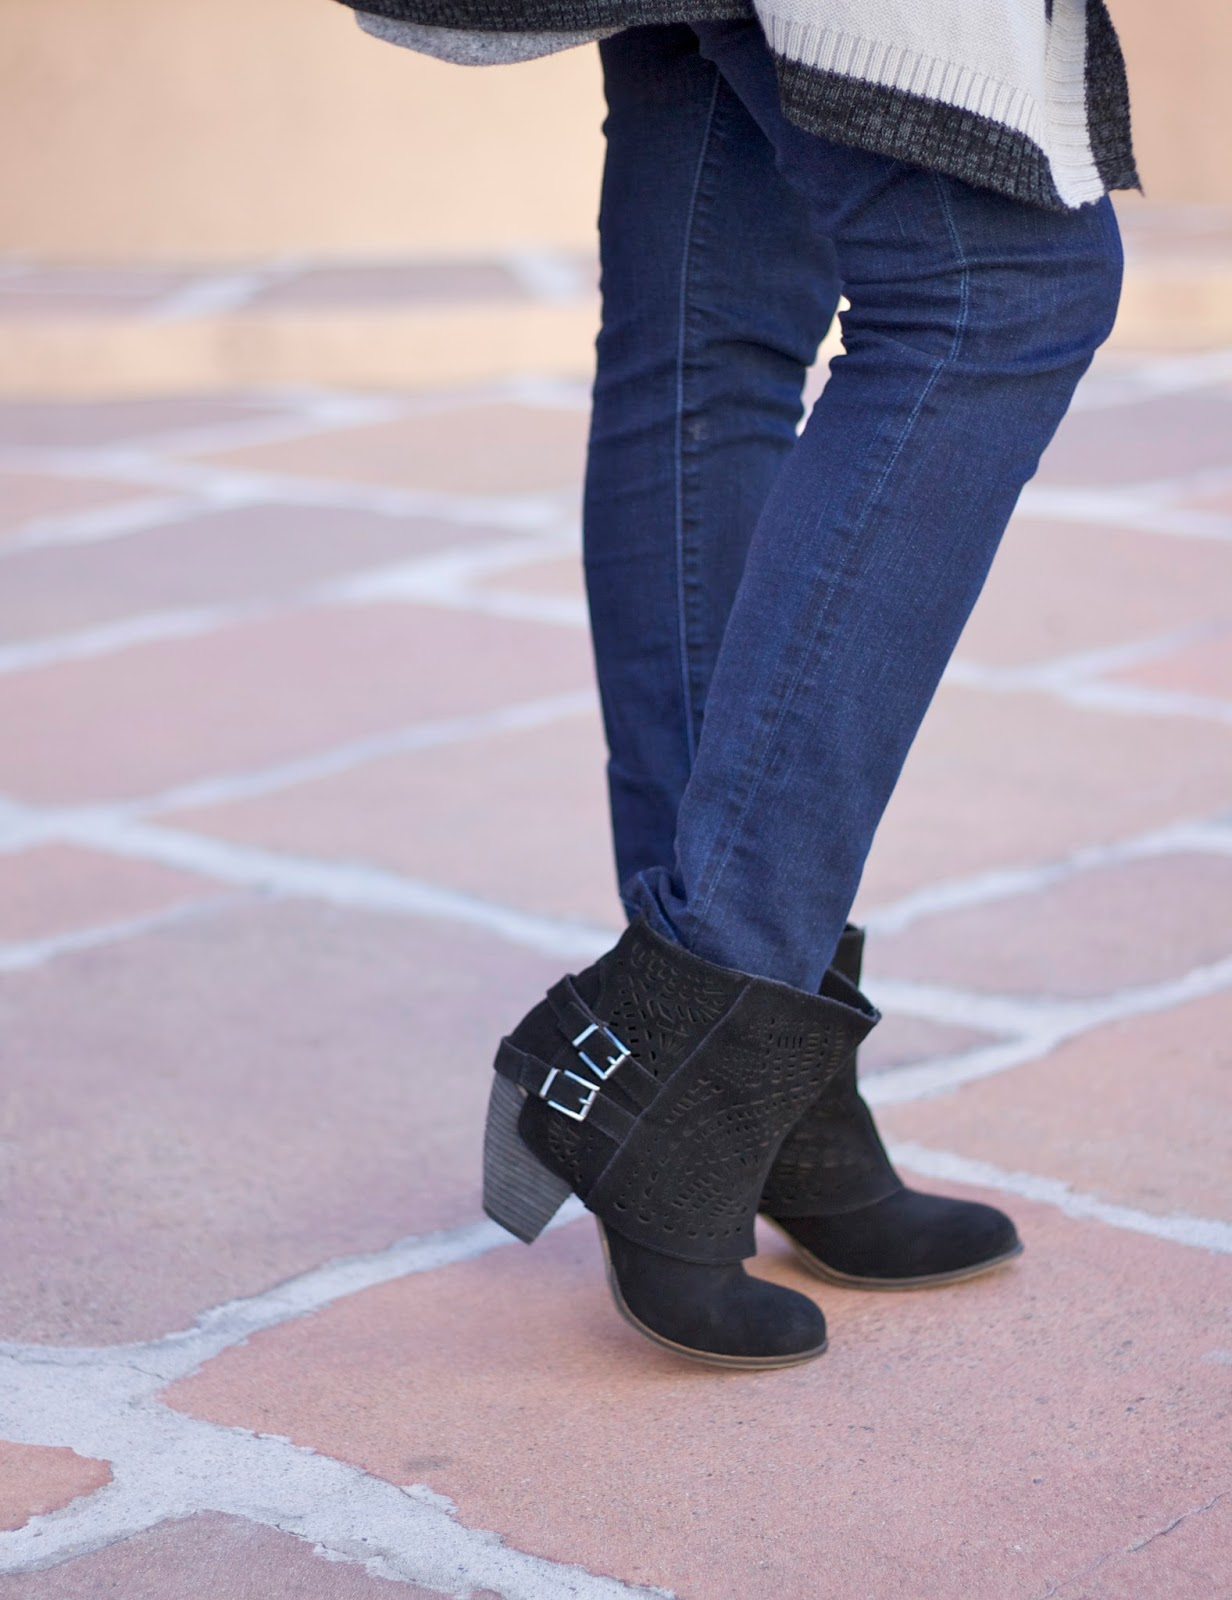 Naughty Monkey Lyric Boots, Naughty Monkey booties, black booties for Fall 2015, Fall booties, Cabi skinny jeans, cabi blogger